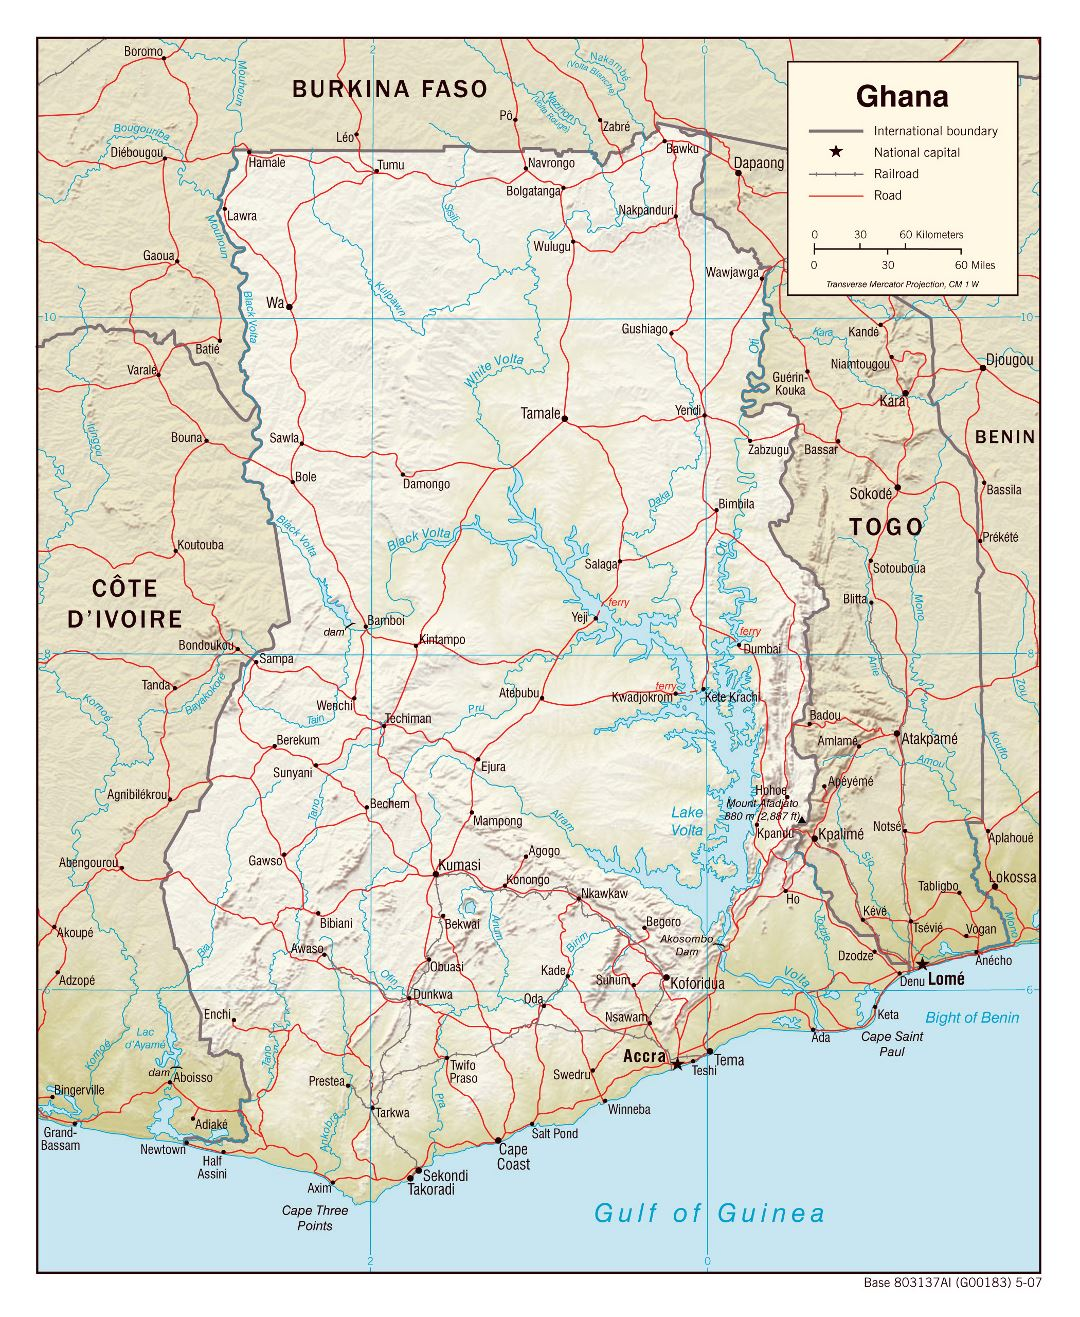 Large political map of Ghana with relief, roads, railroads and cities - 2007